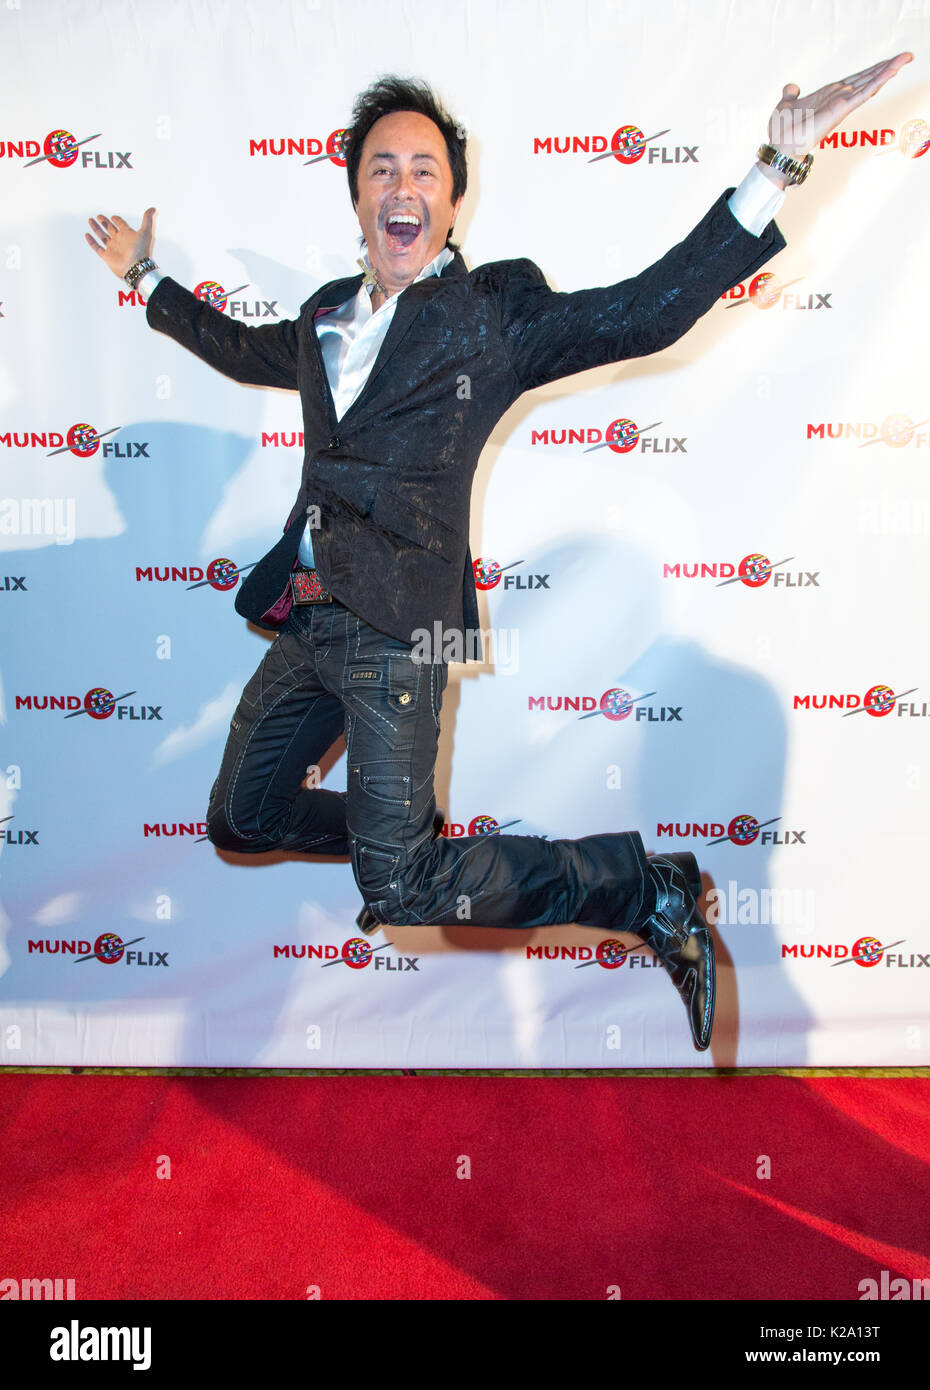 Studio City, California, USA. 28th August, 2017. TV personality Jaime Monroy jumps for joy on the red carpet at the MUNDOFLIX Launch Party at the Sportsmen's Lodge in Studio City, California on August 28, 2017.  MUNDOFLIX is a new media company dedicated to serving the Latino and Hispanic community with film and television content in both Spanish and English.  Credit: Sheri Determan/Alamy Live News - Stock Image